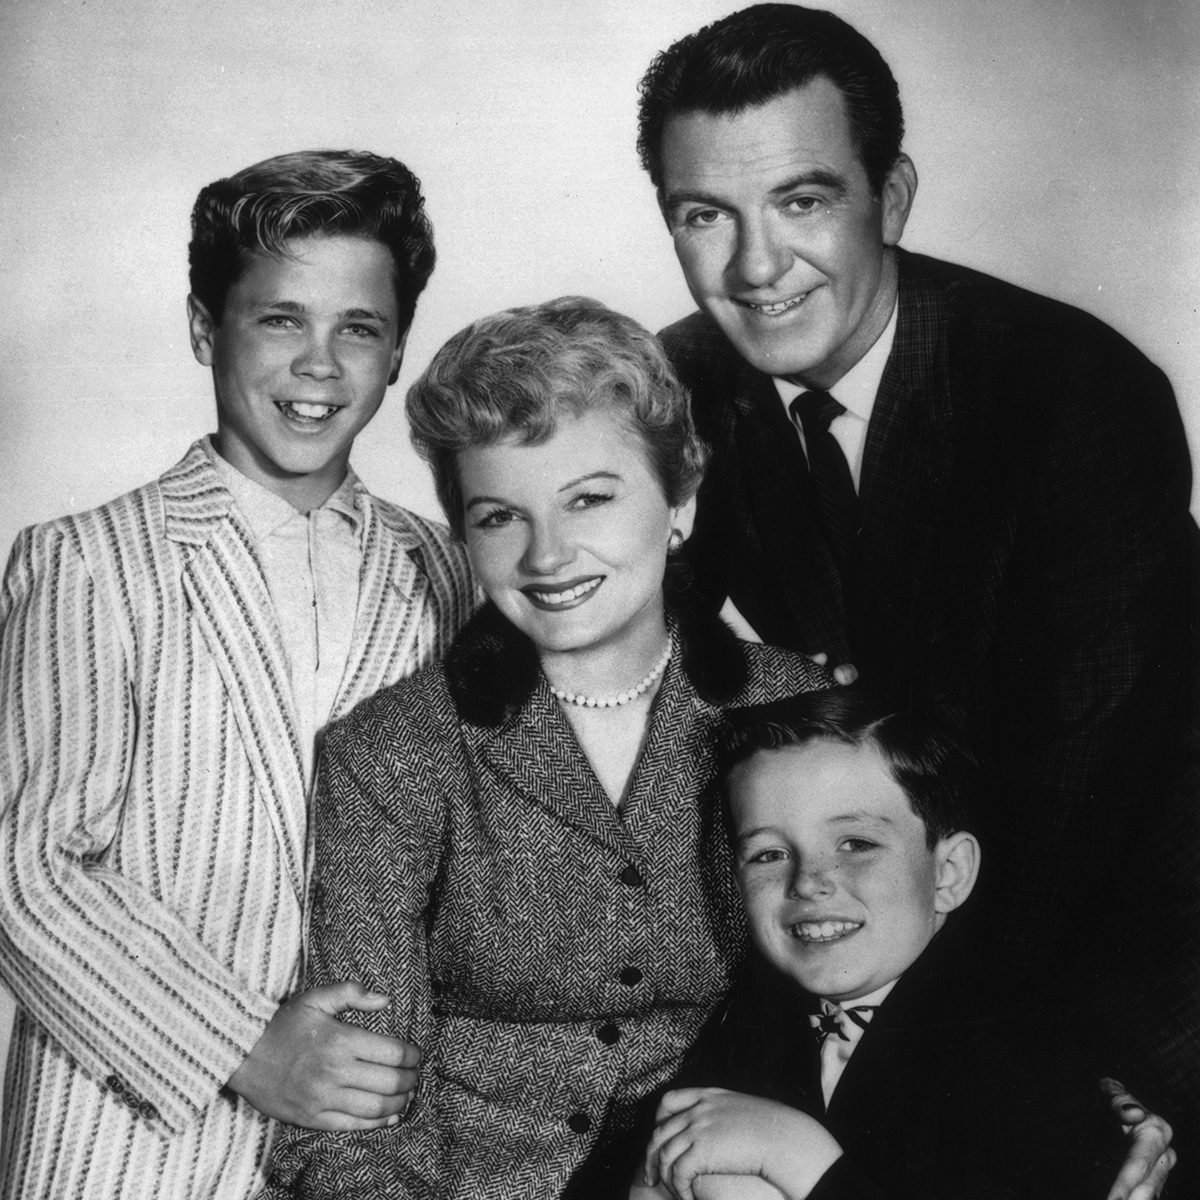 circa 1957: American actors (clockwise, from left) Tony Dow, Hugh Beaumont (1909 - 1982), Jerry Mathers, and Barbara Billingsley pose together in a promotional portrait for the television series, 'Leave It to Beaver'. (Photo by CBS Photo Archive/Getty Images)